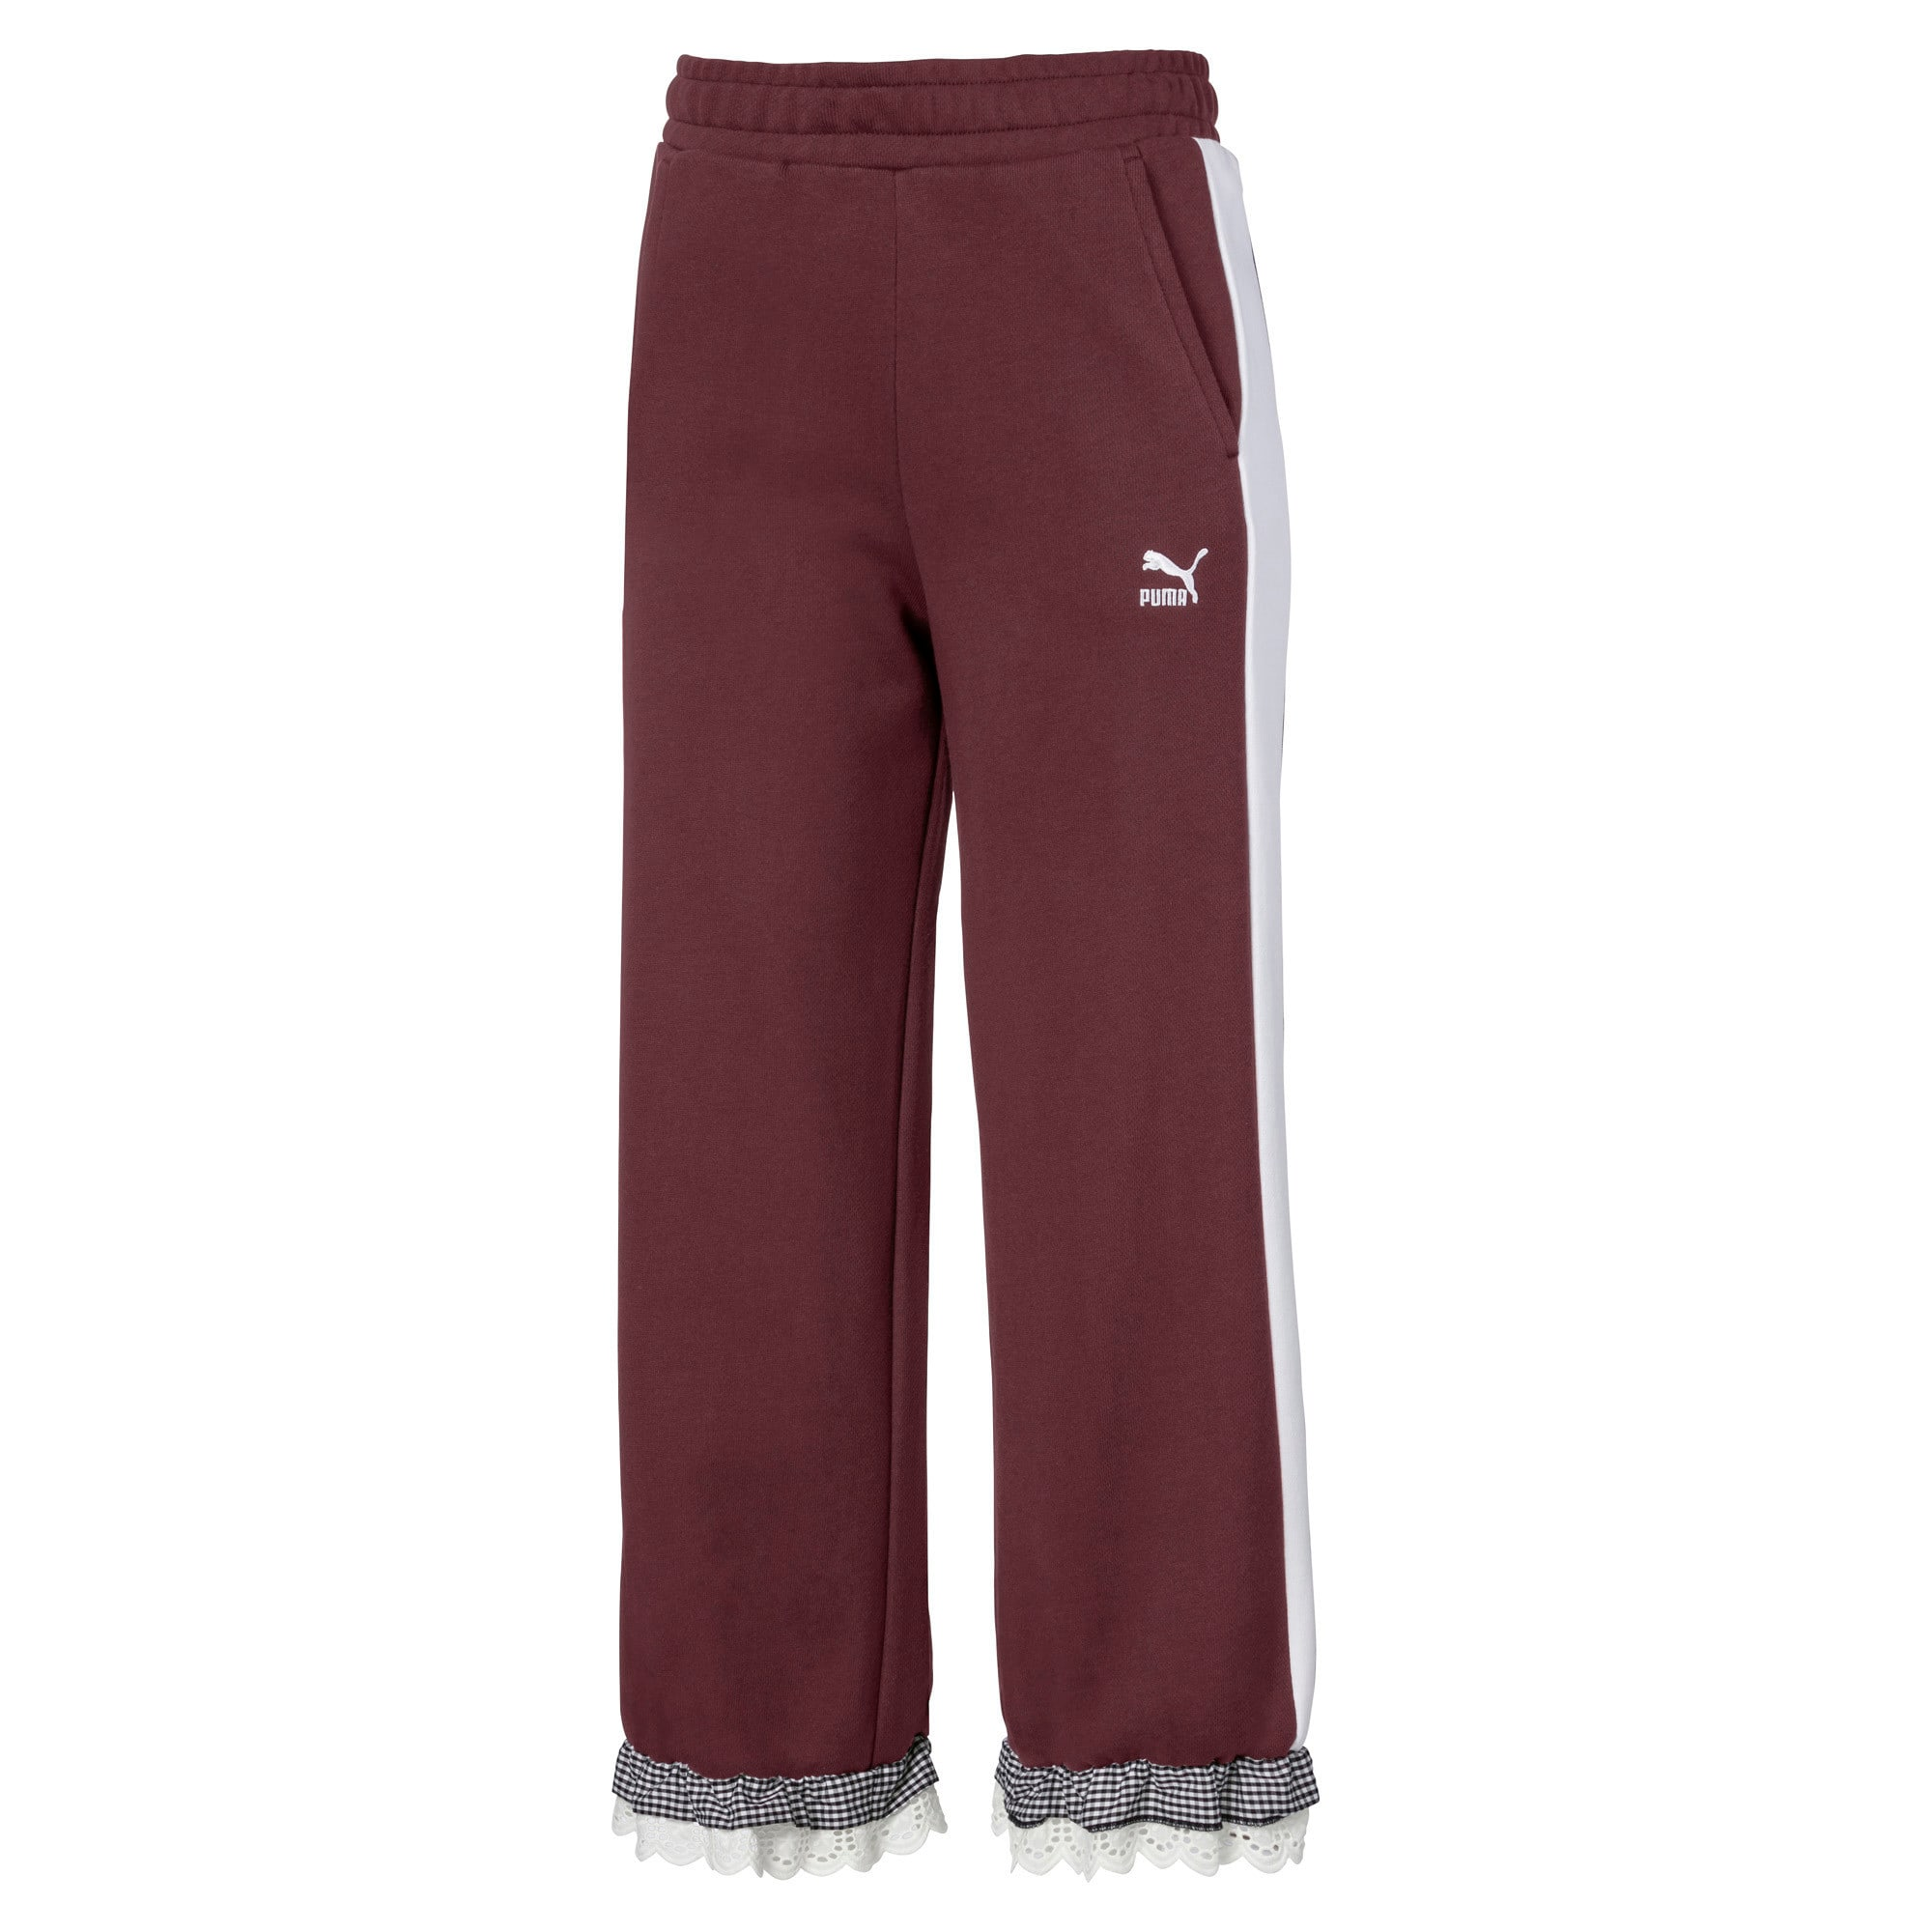 Thumbnail 1 of PUMA x TYAKASHA Women's Culottes, Vineyard Wine, medium